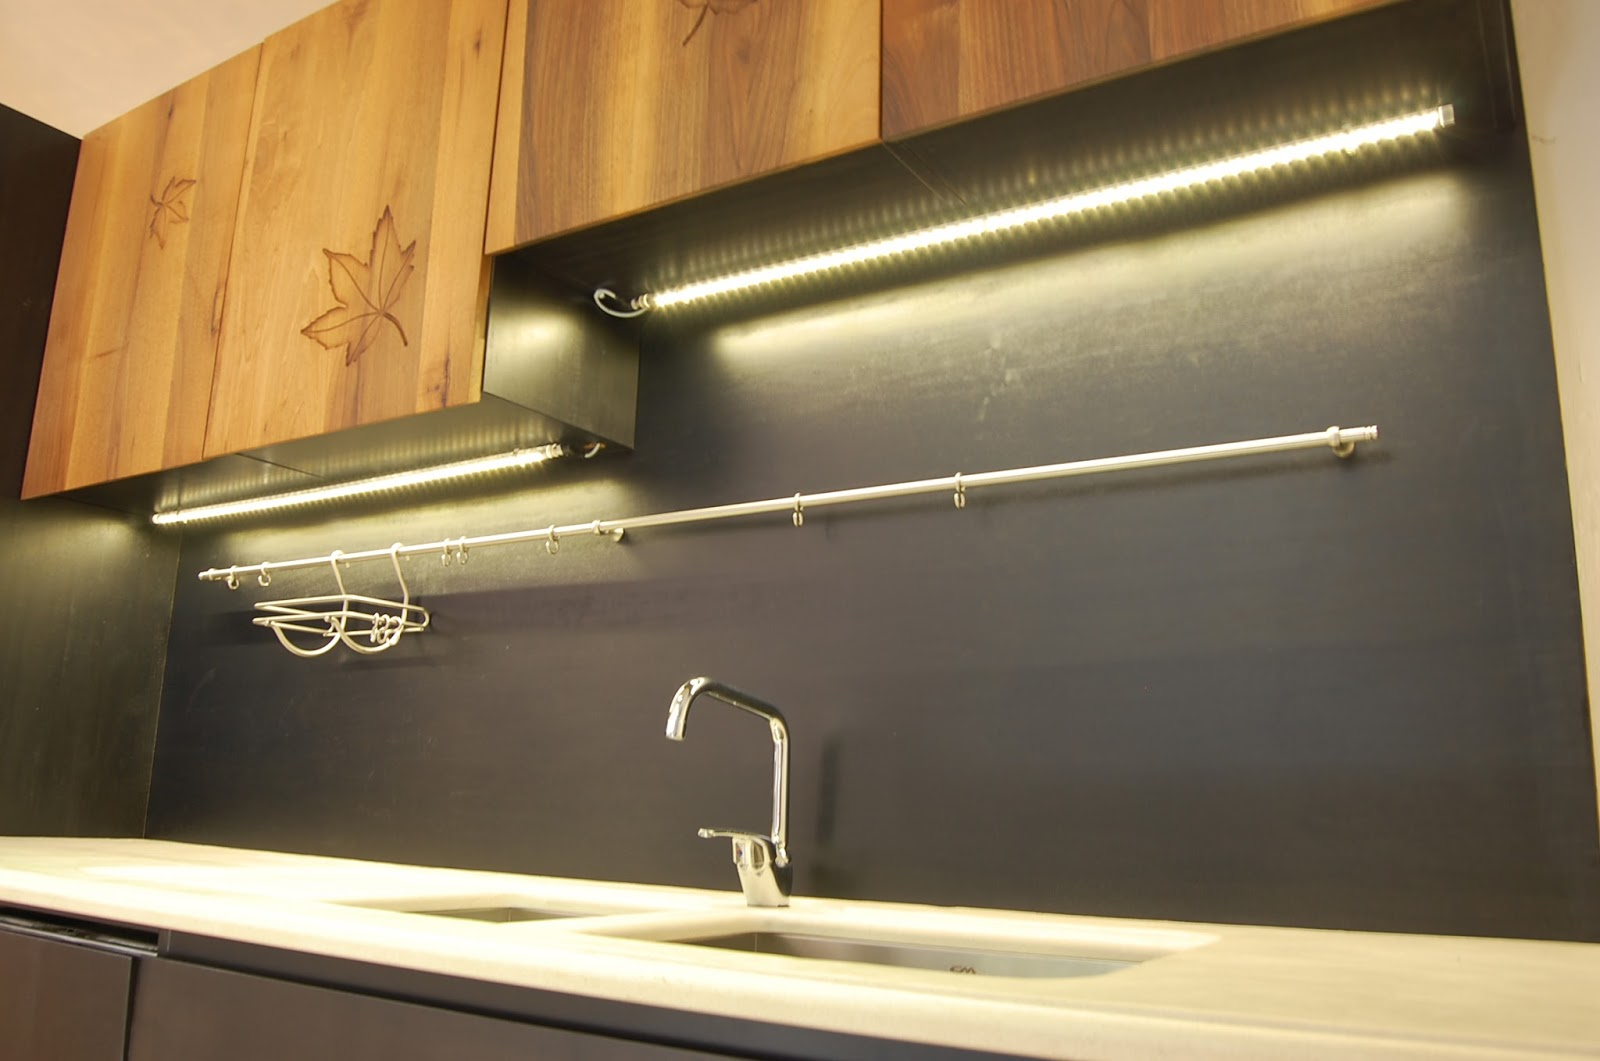 Awesome Illuminazione Sottopensile Cucina Gallery - Ridgewayng.com ...